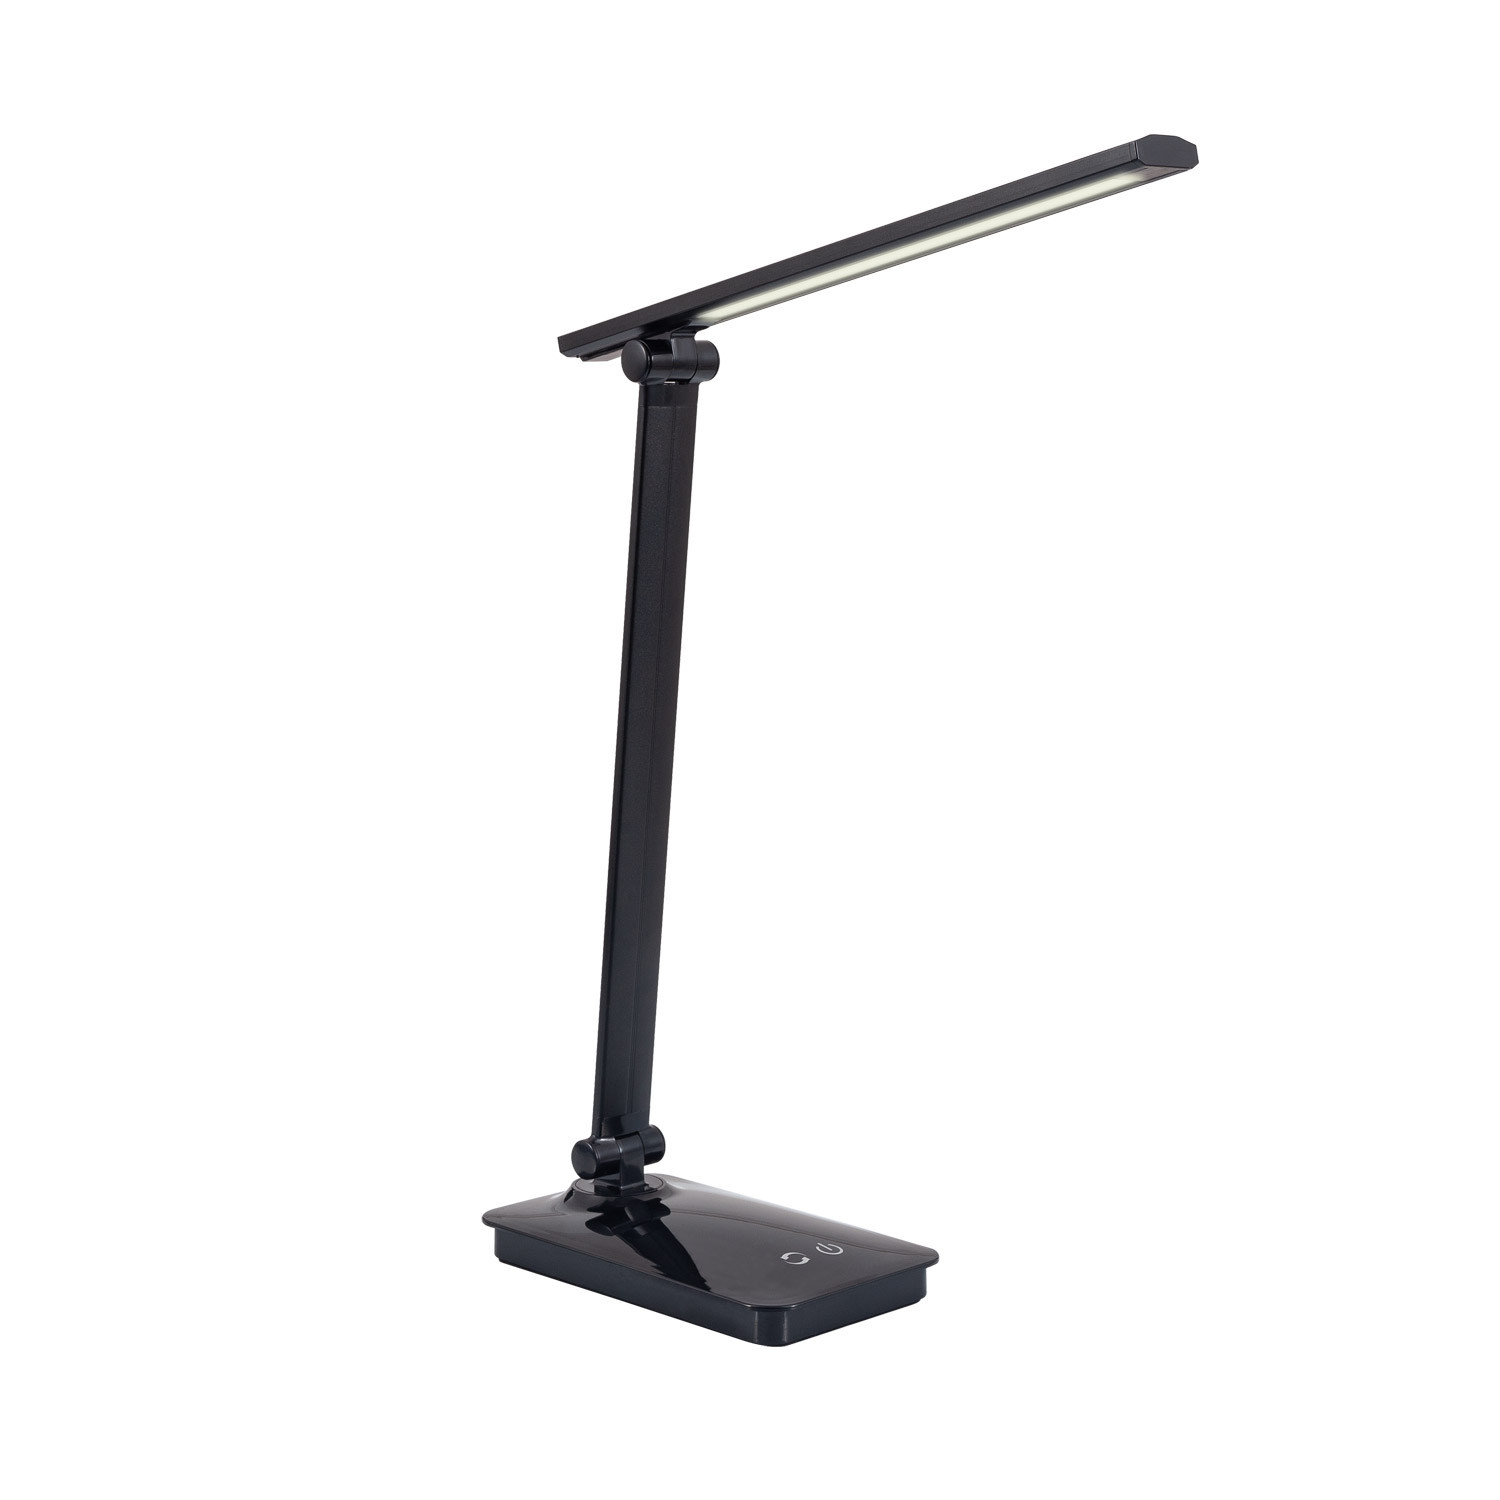 TECHBREY Flexo LED Harbin Dimmable CCT Selectable 5W With USB Table Lamp, Desk, Office, Auxiliary